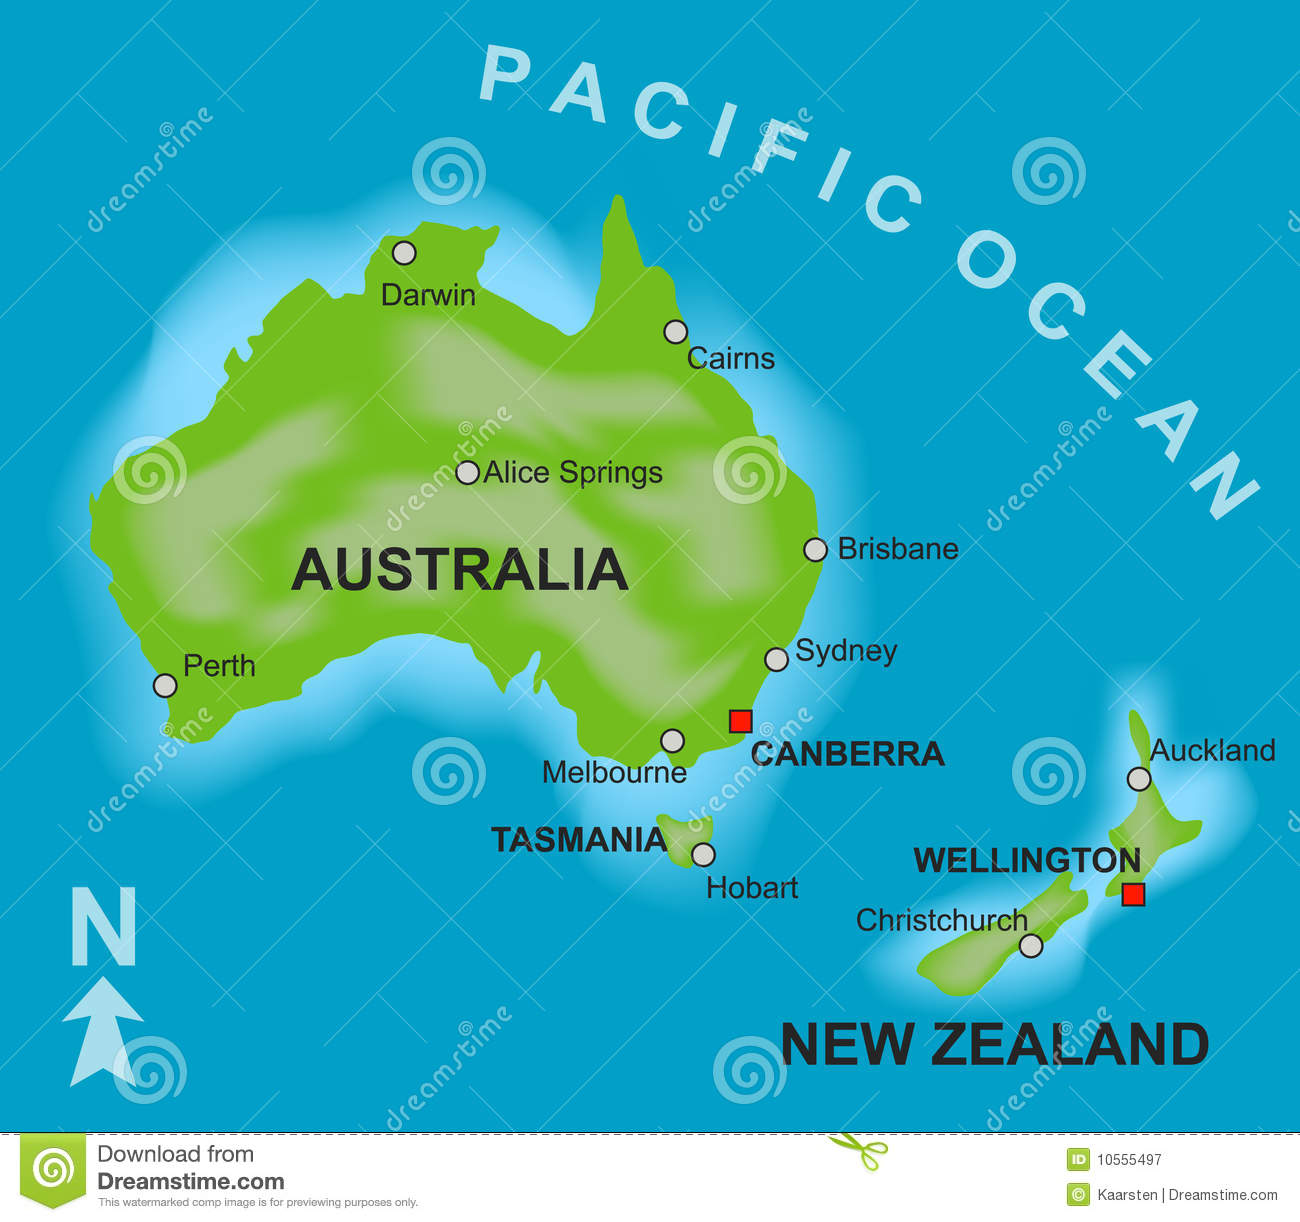 Map Of Australia And New Zealand Stock Vector - Illustration of ...